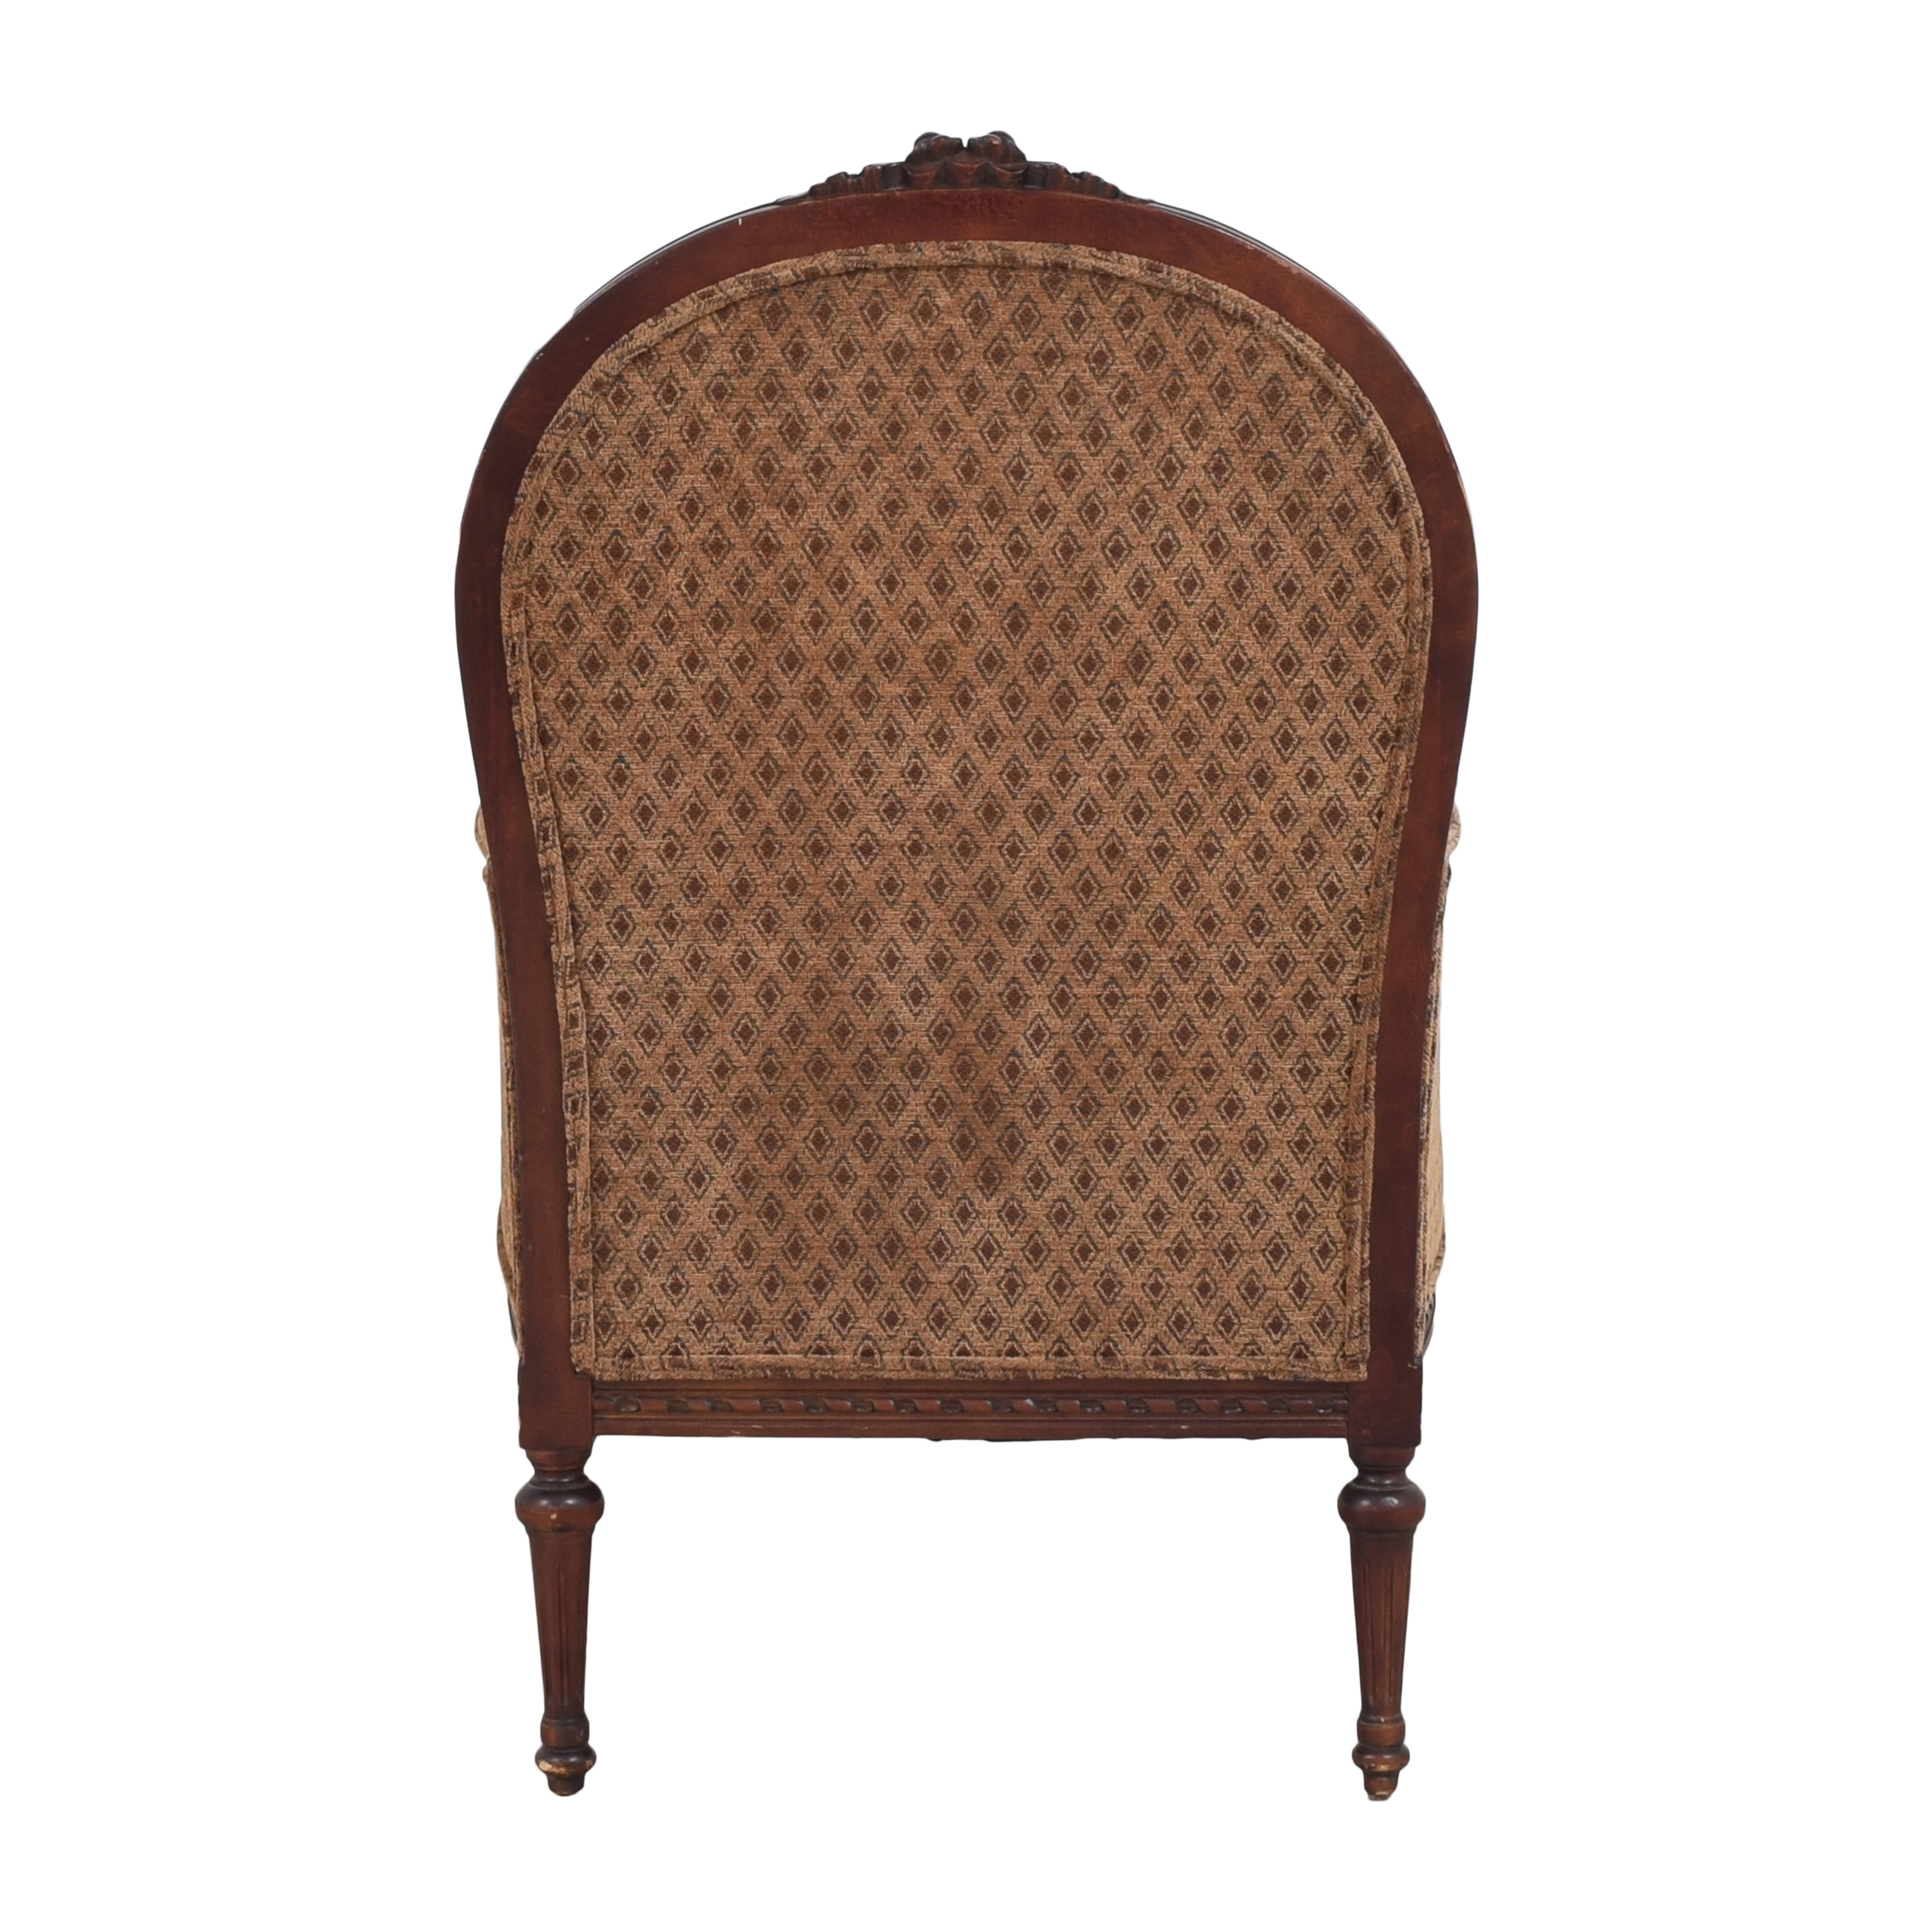 Thomasville Thomasville Upholstered Chair discount